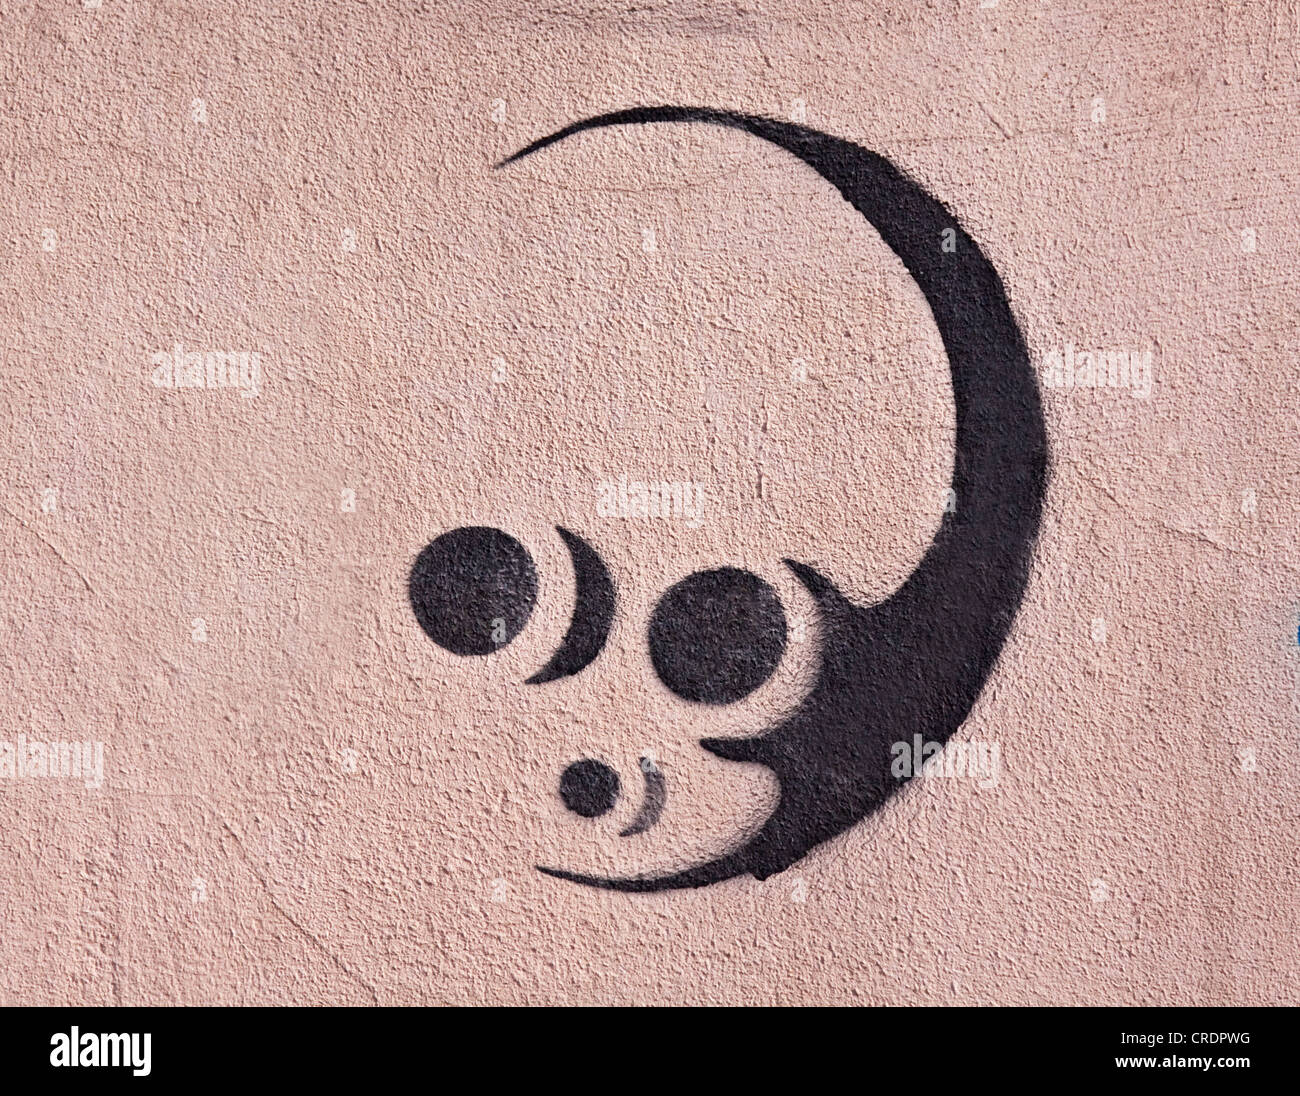 Alien, stencil graffiti on the wall of a building, Riga, Latvia, Europe - Stock Image